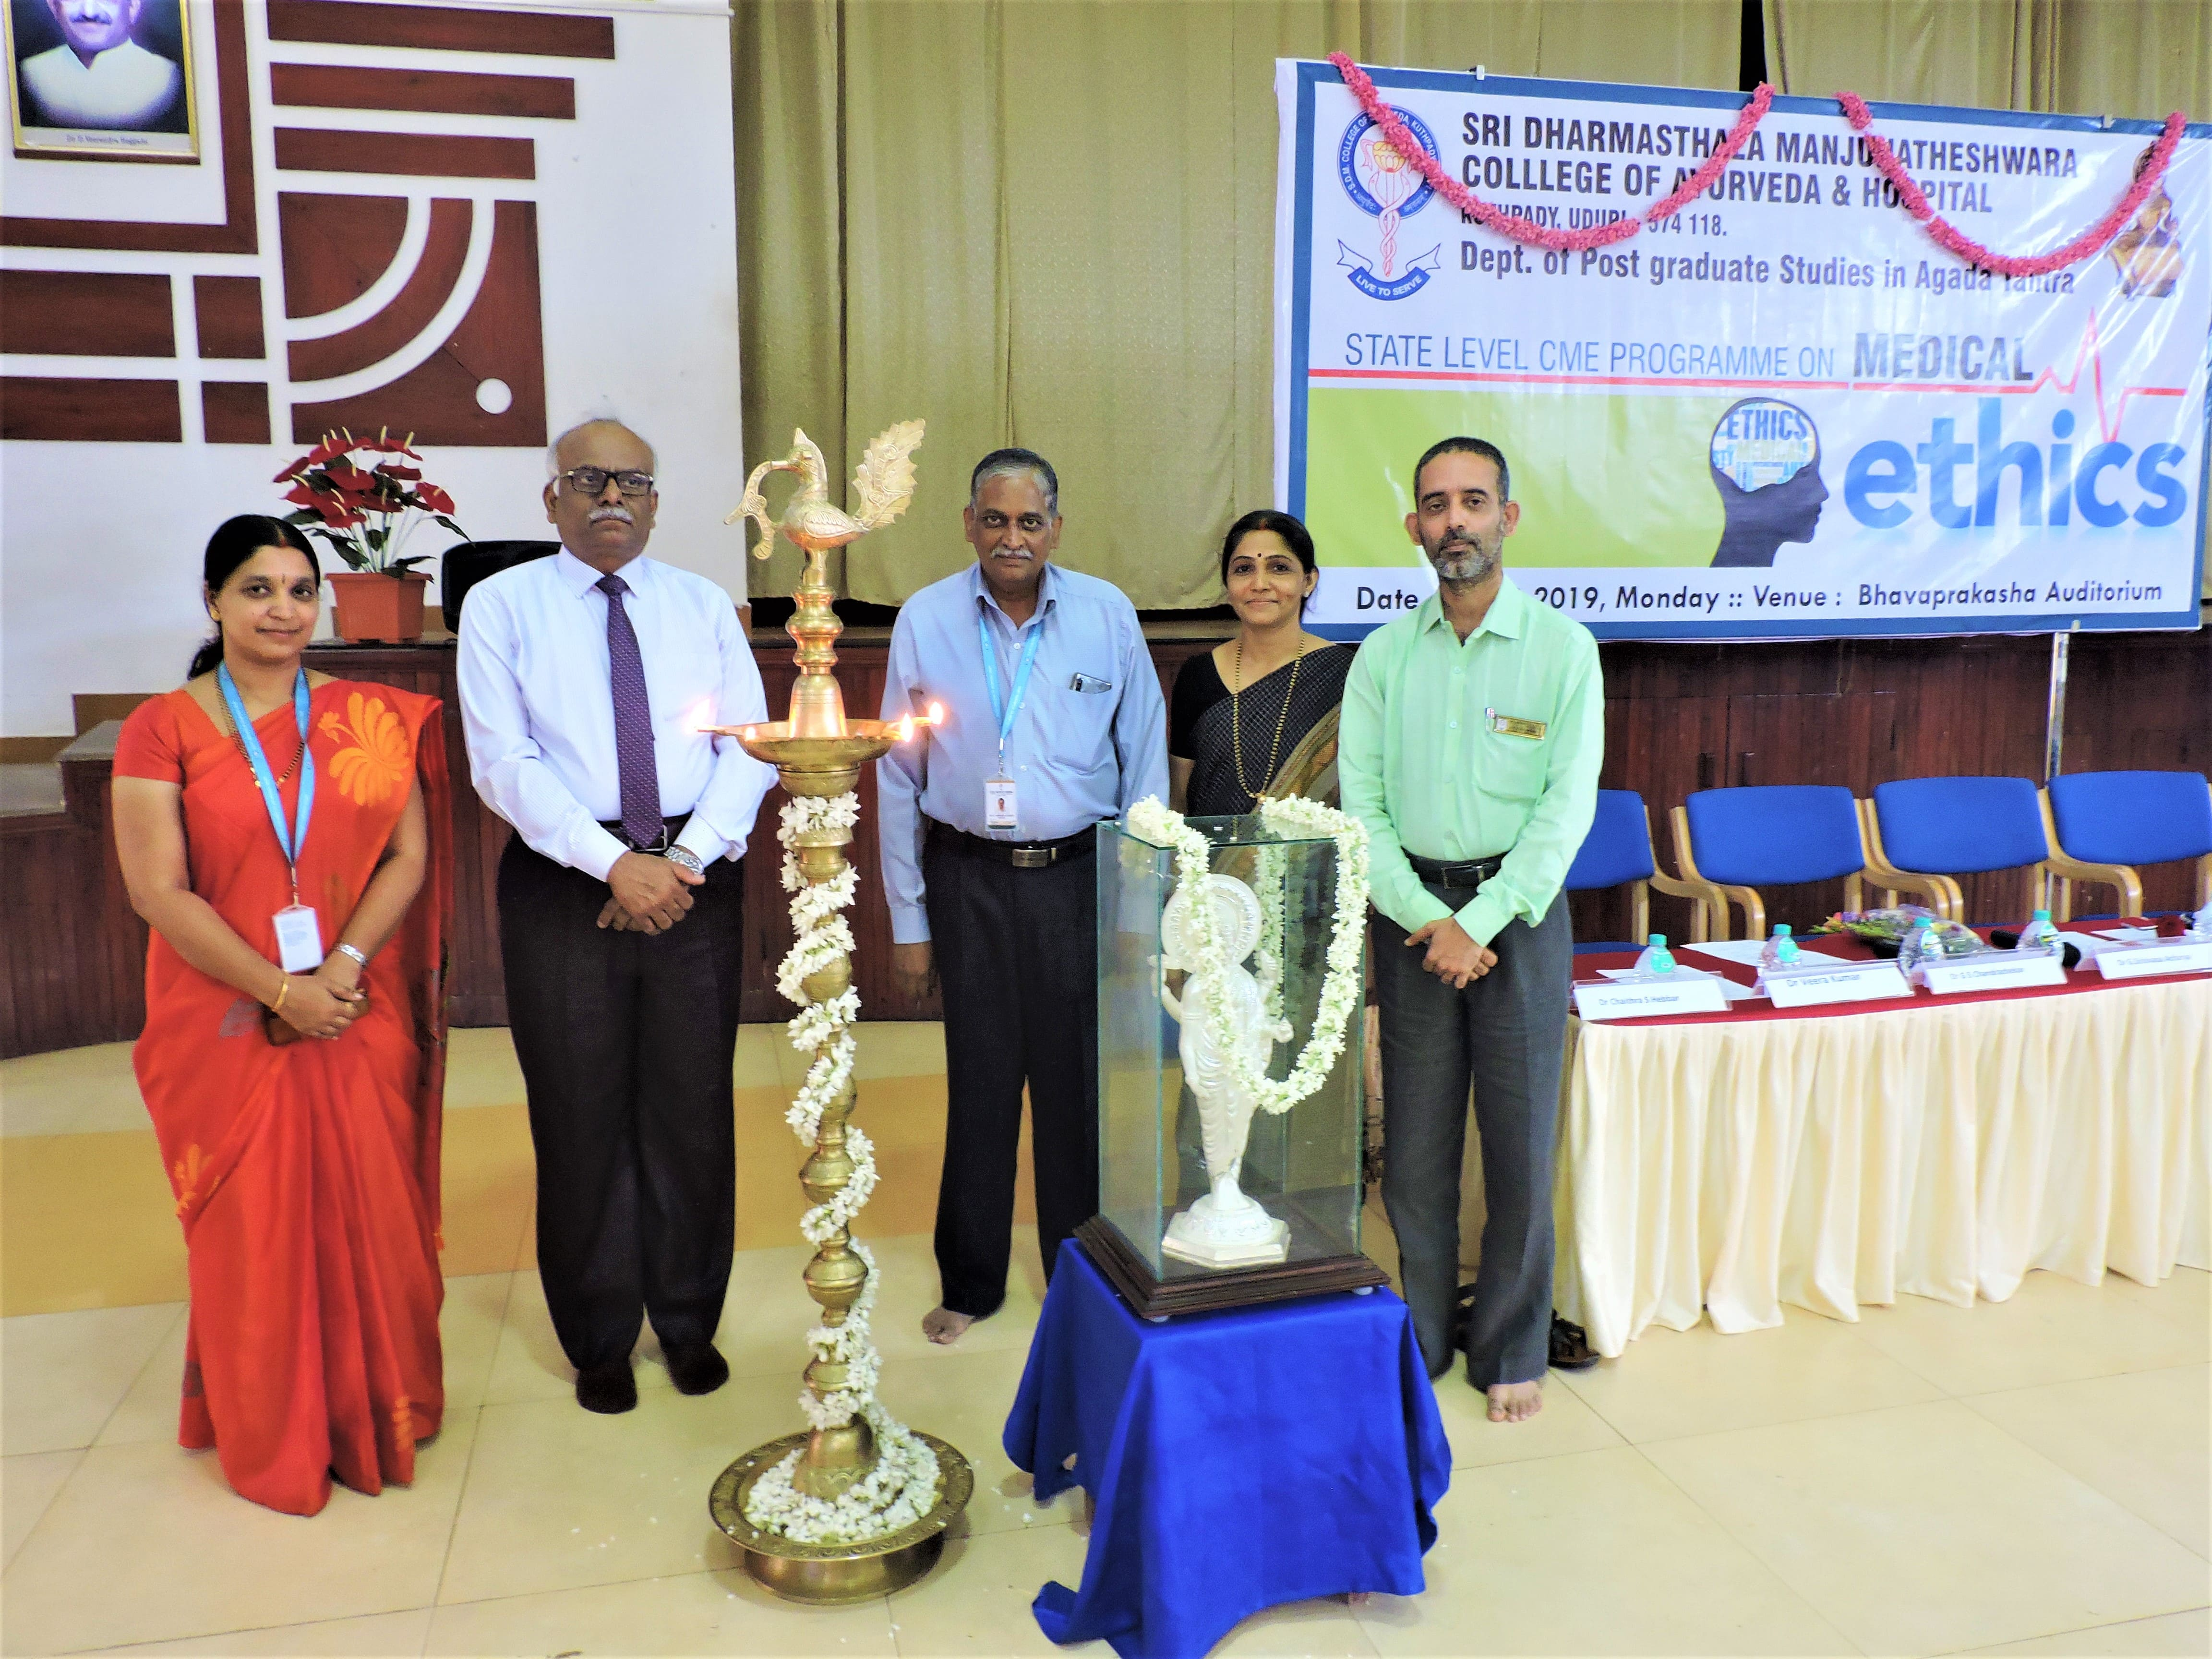 Doctor's Profession is a Noble Profession: Dr G. S. Chandrashekhar